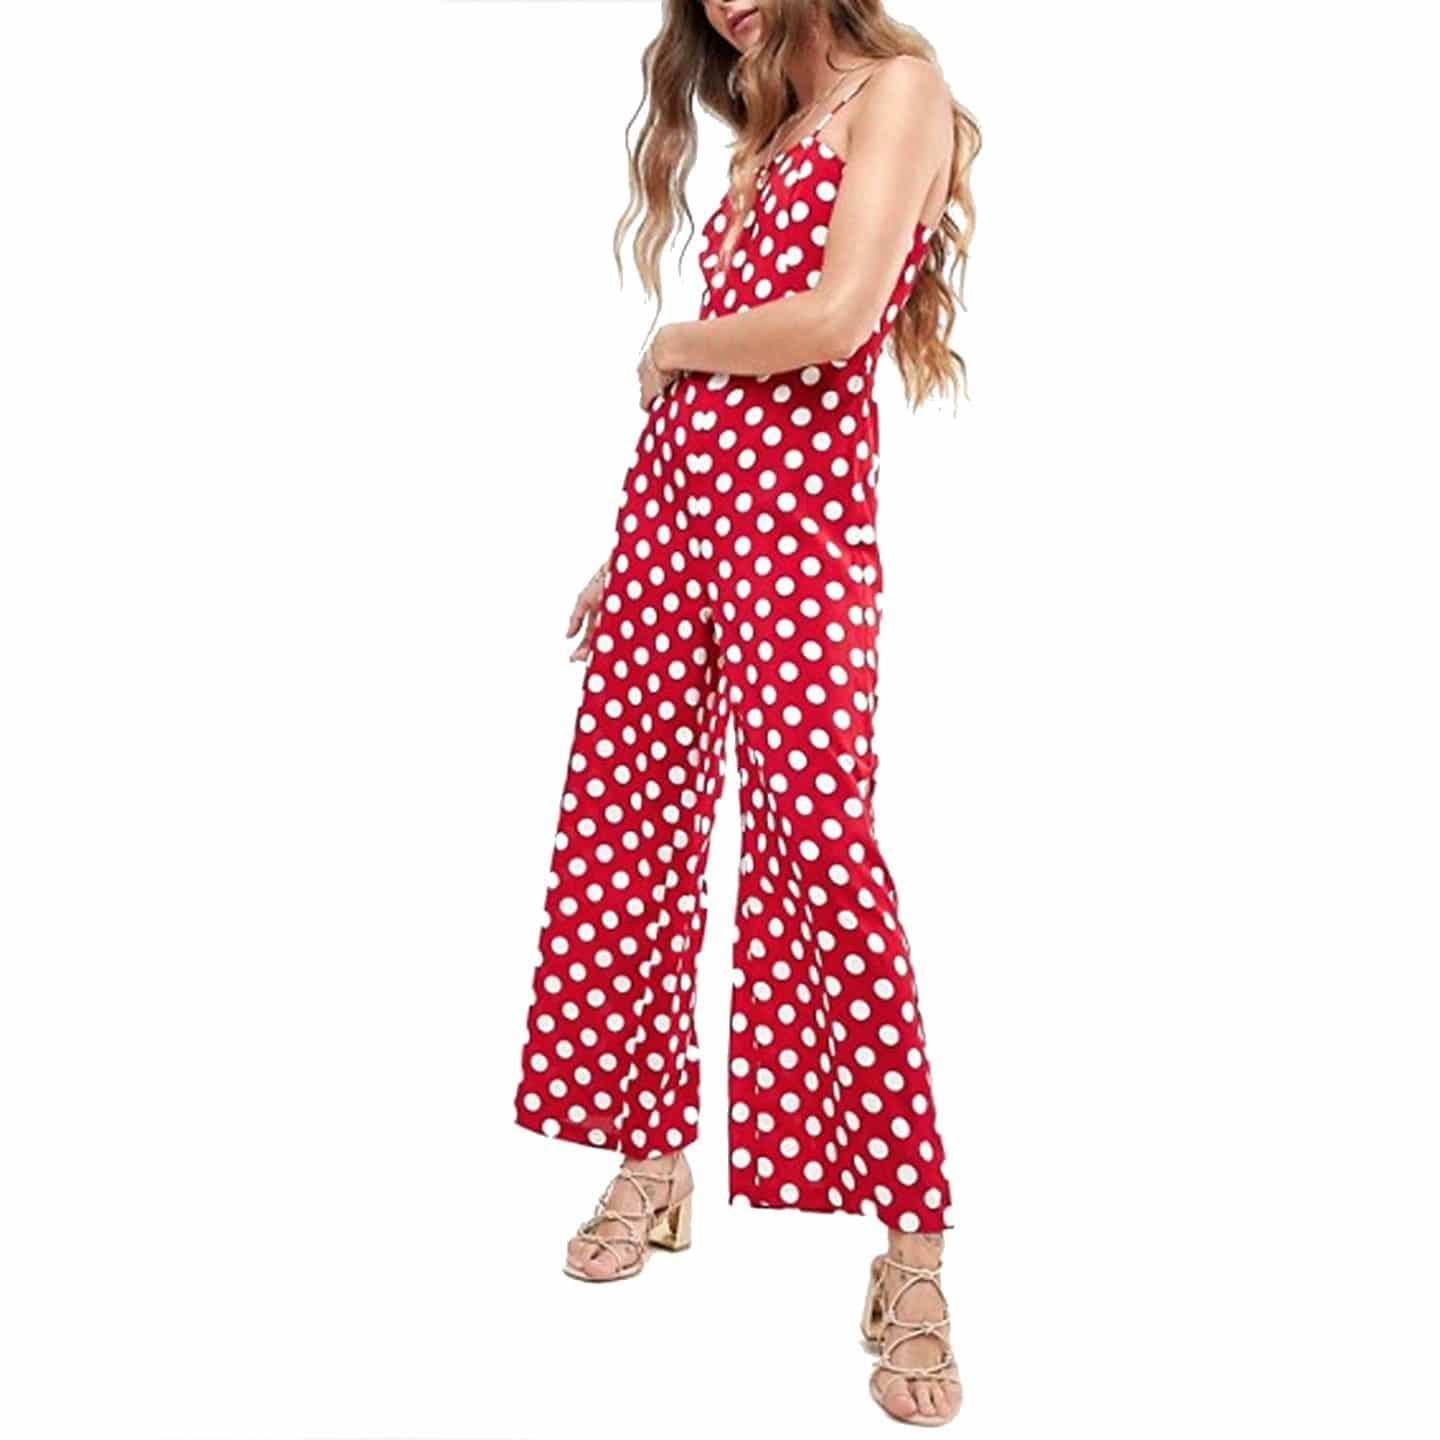 Love & Other Things Polka Dot Jumpsuit | www.ashleybrookedesigns.com